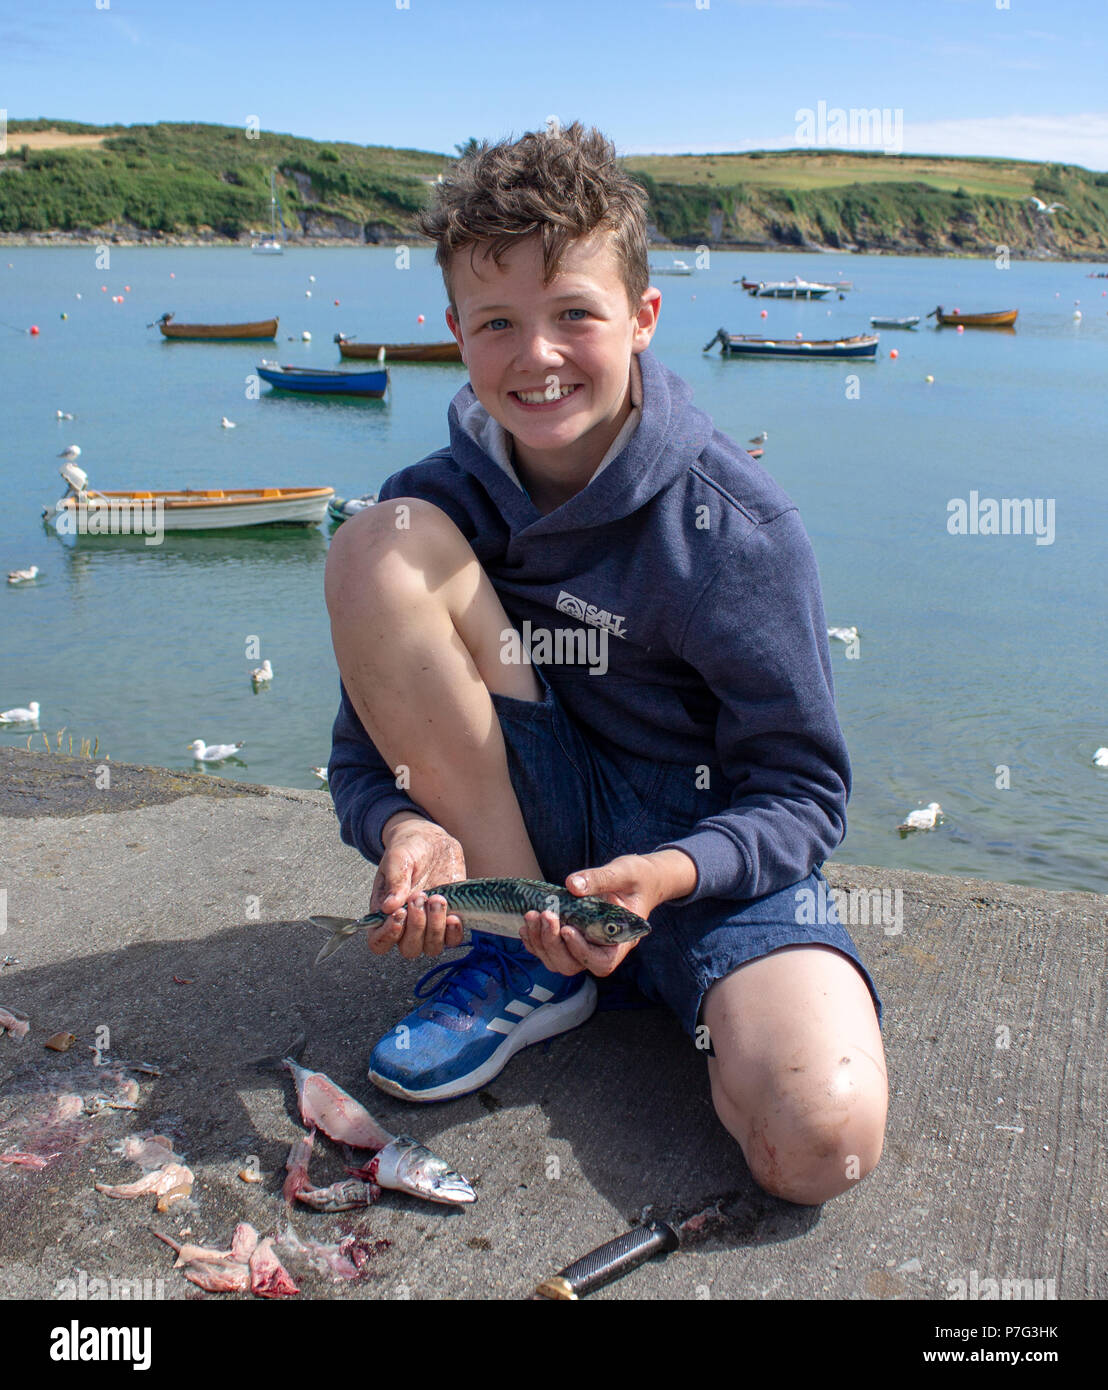 castletownshend-west-cork-ireland-6th-july-2018-the-heat-wave-continues-in-west-cork-and-the-local-mackerel-fishing-trips-for-holiday-makers-are-making-the-most-of-it-stephen-kearney-just-returned-from-a-mackerel-fishing-trip-with-his-father-seen-here-filleting-his-catch-for-supper-the-lad-has-all-the-makings-of-a-fine-fisherman-temperatures-are-expected-to-remain-high-for-the-rest-of-the-week-credit-aphperspectivealamy-live-news-P7G3HK.jpg